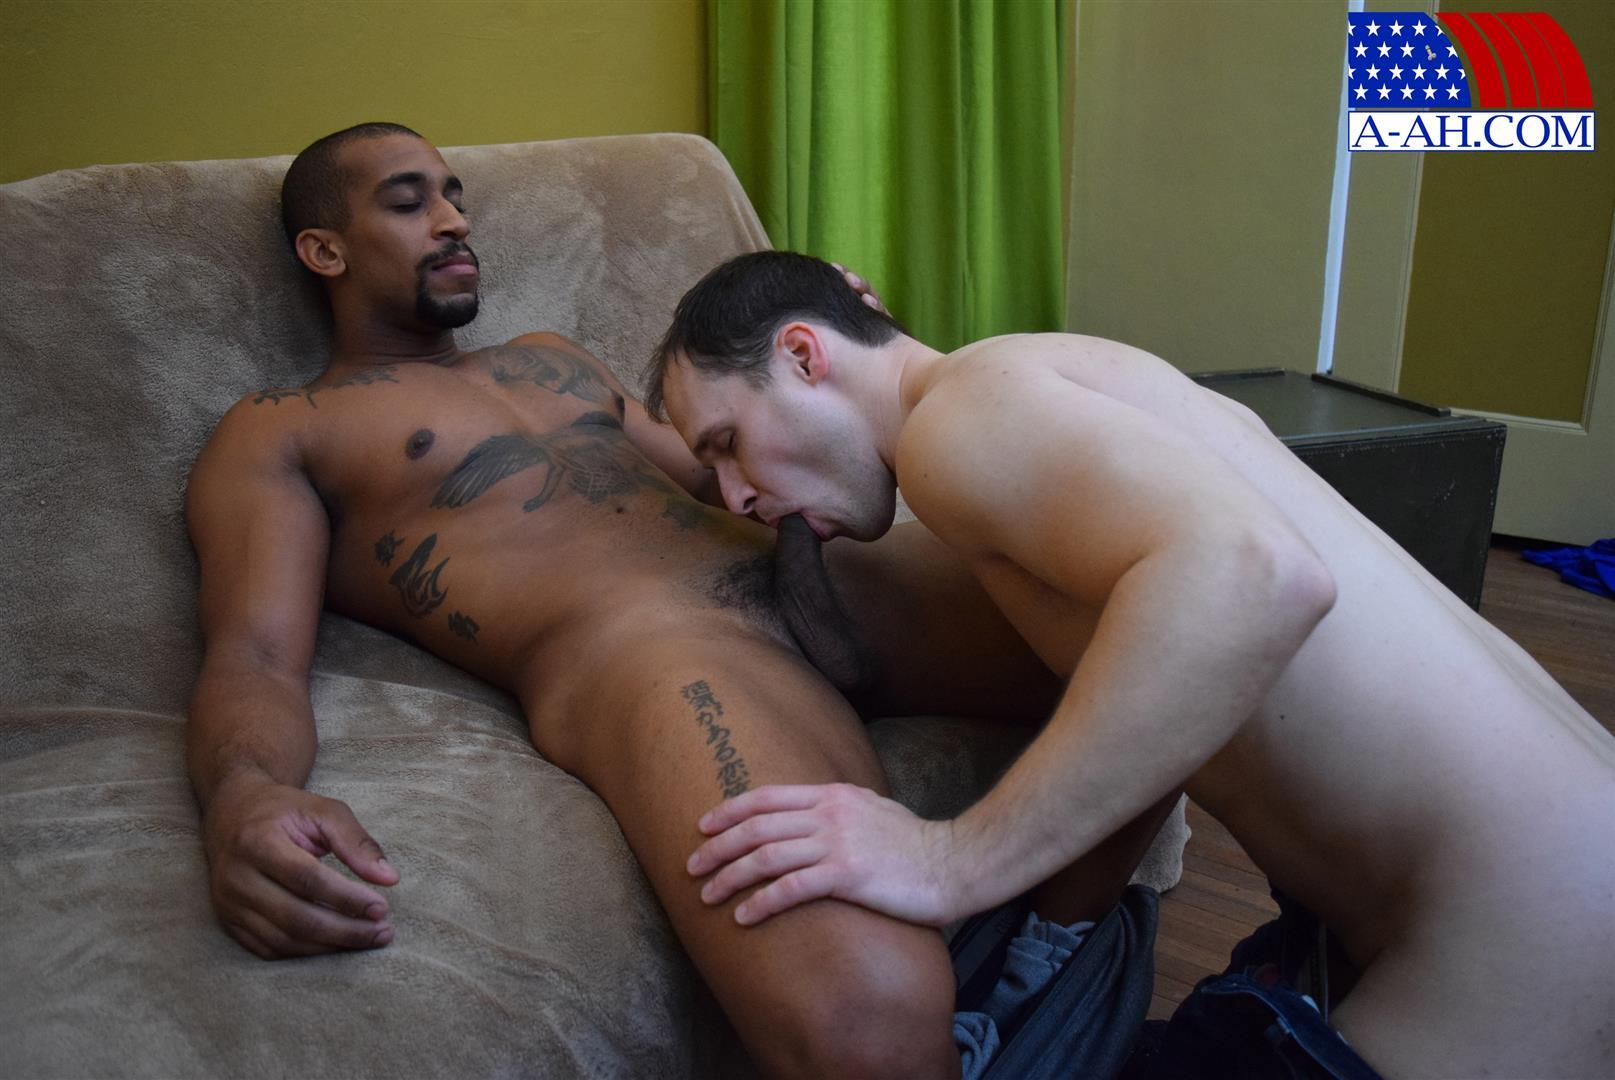 Interracial gay cocks posing tgp